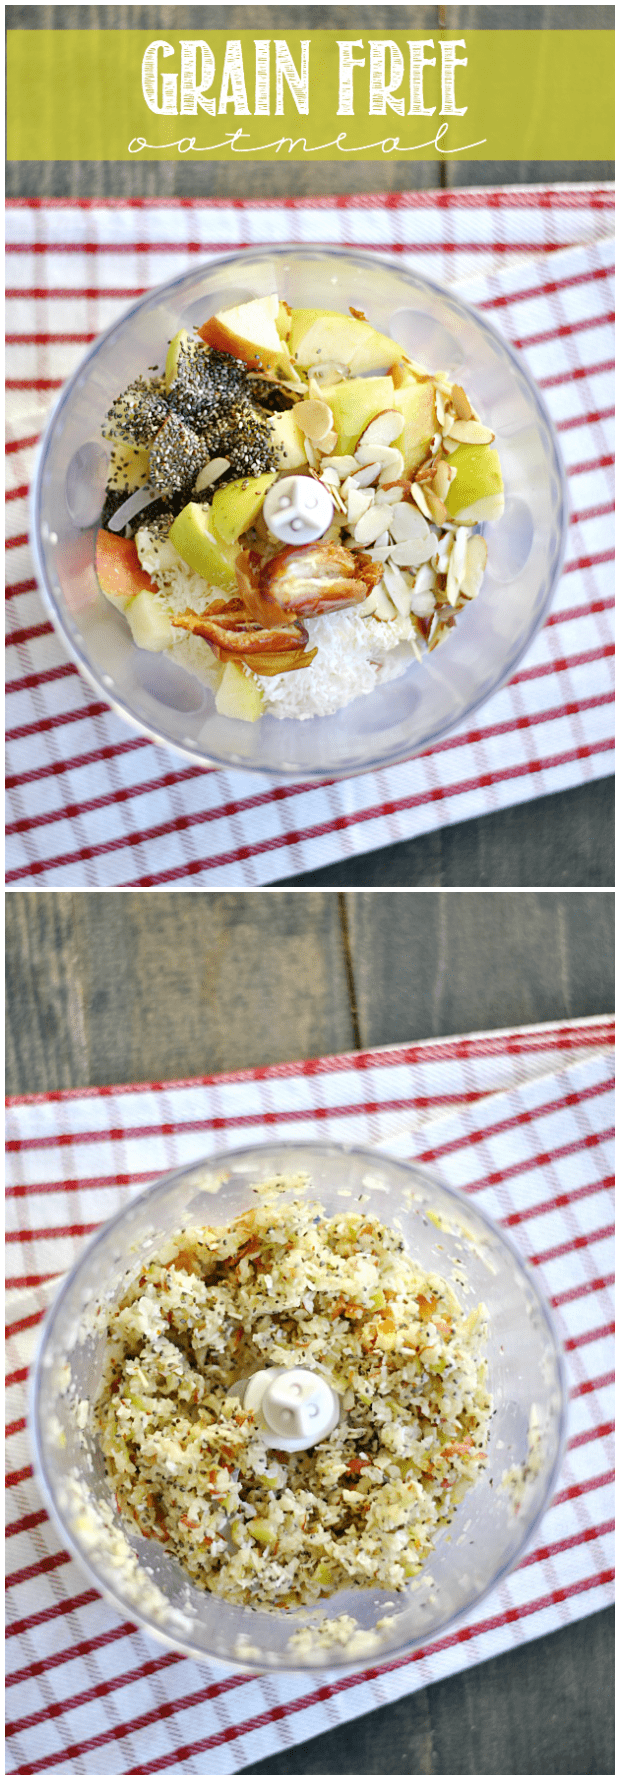 Seriously delicious grain free oatmeal. You'll want to try this healthy bowl whether your avoiding grains or not!